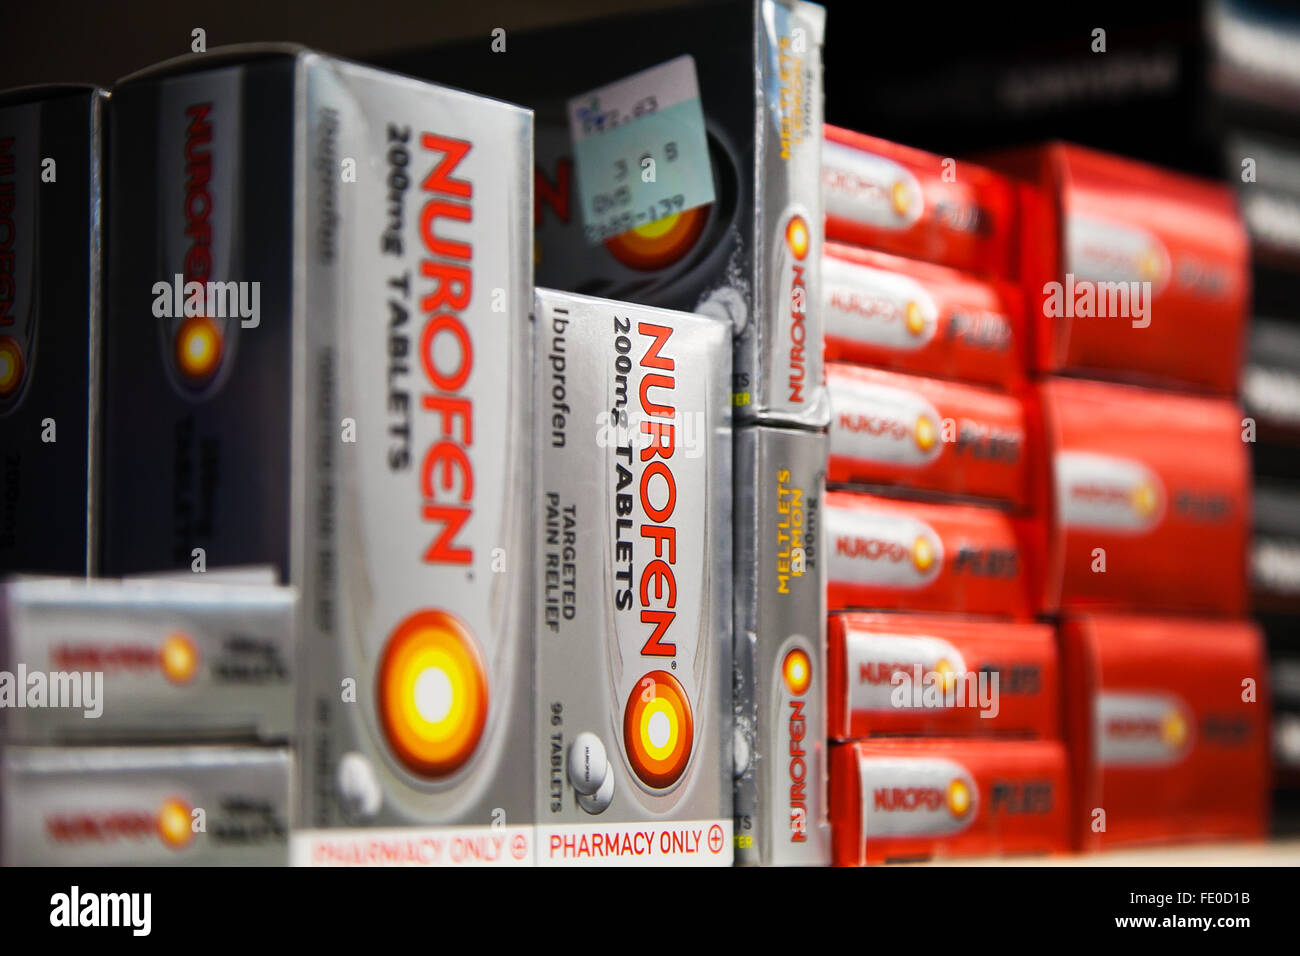 14th December 2015 -- An Australian court has ordered products in the Nurofen pain relief range off the shelves. - Stock Image